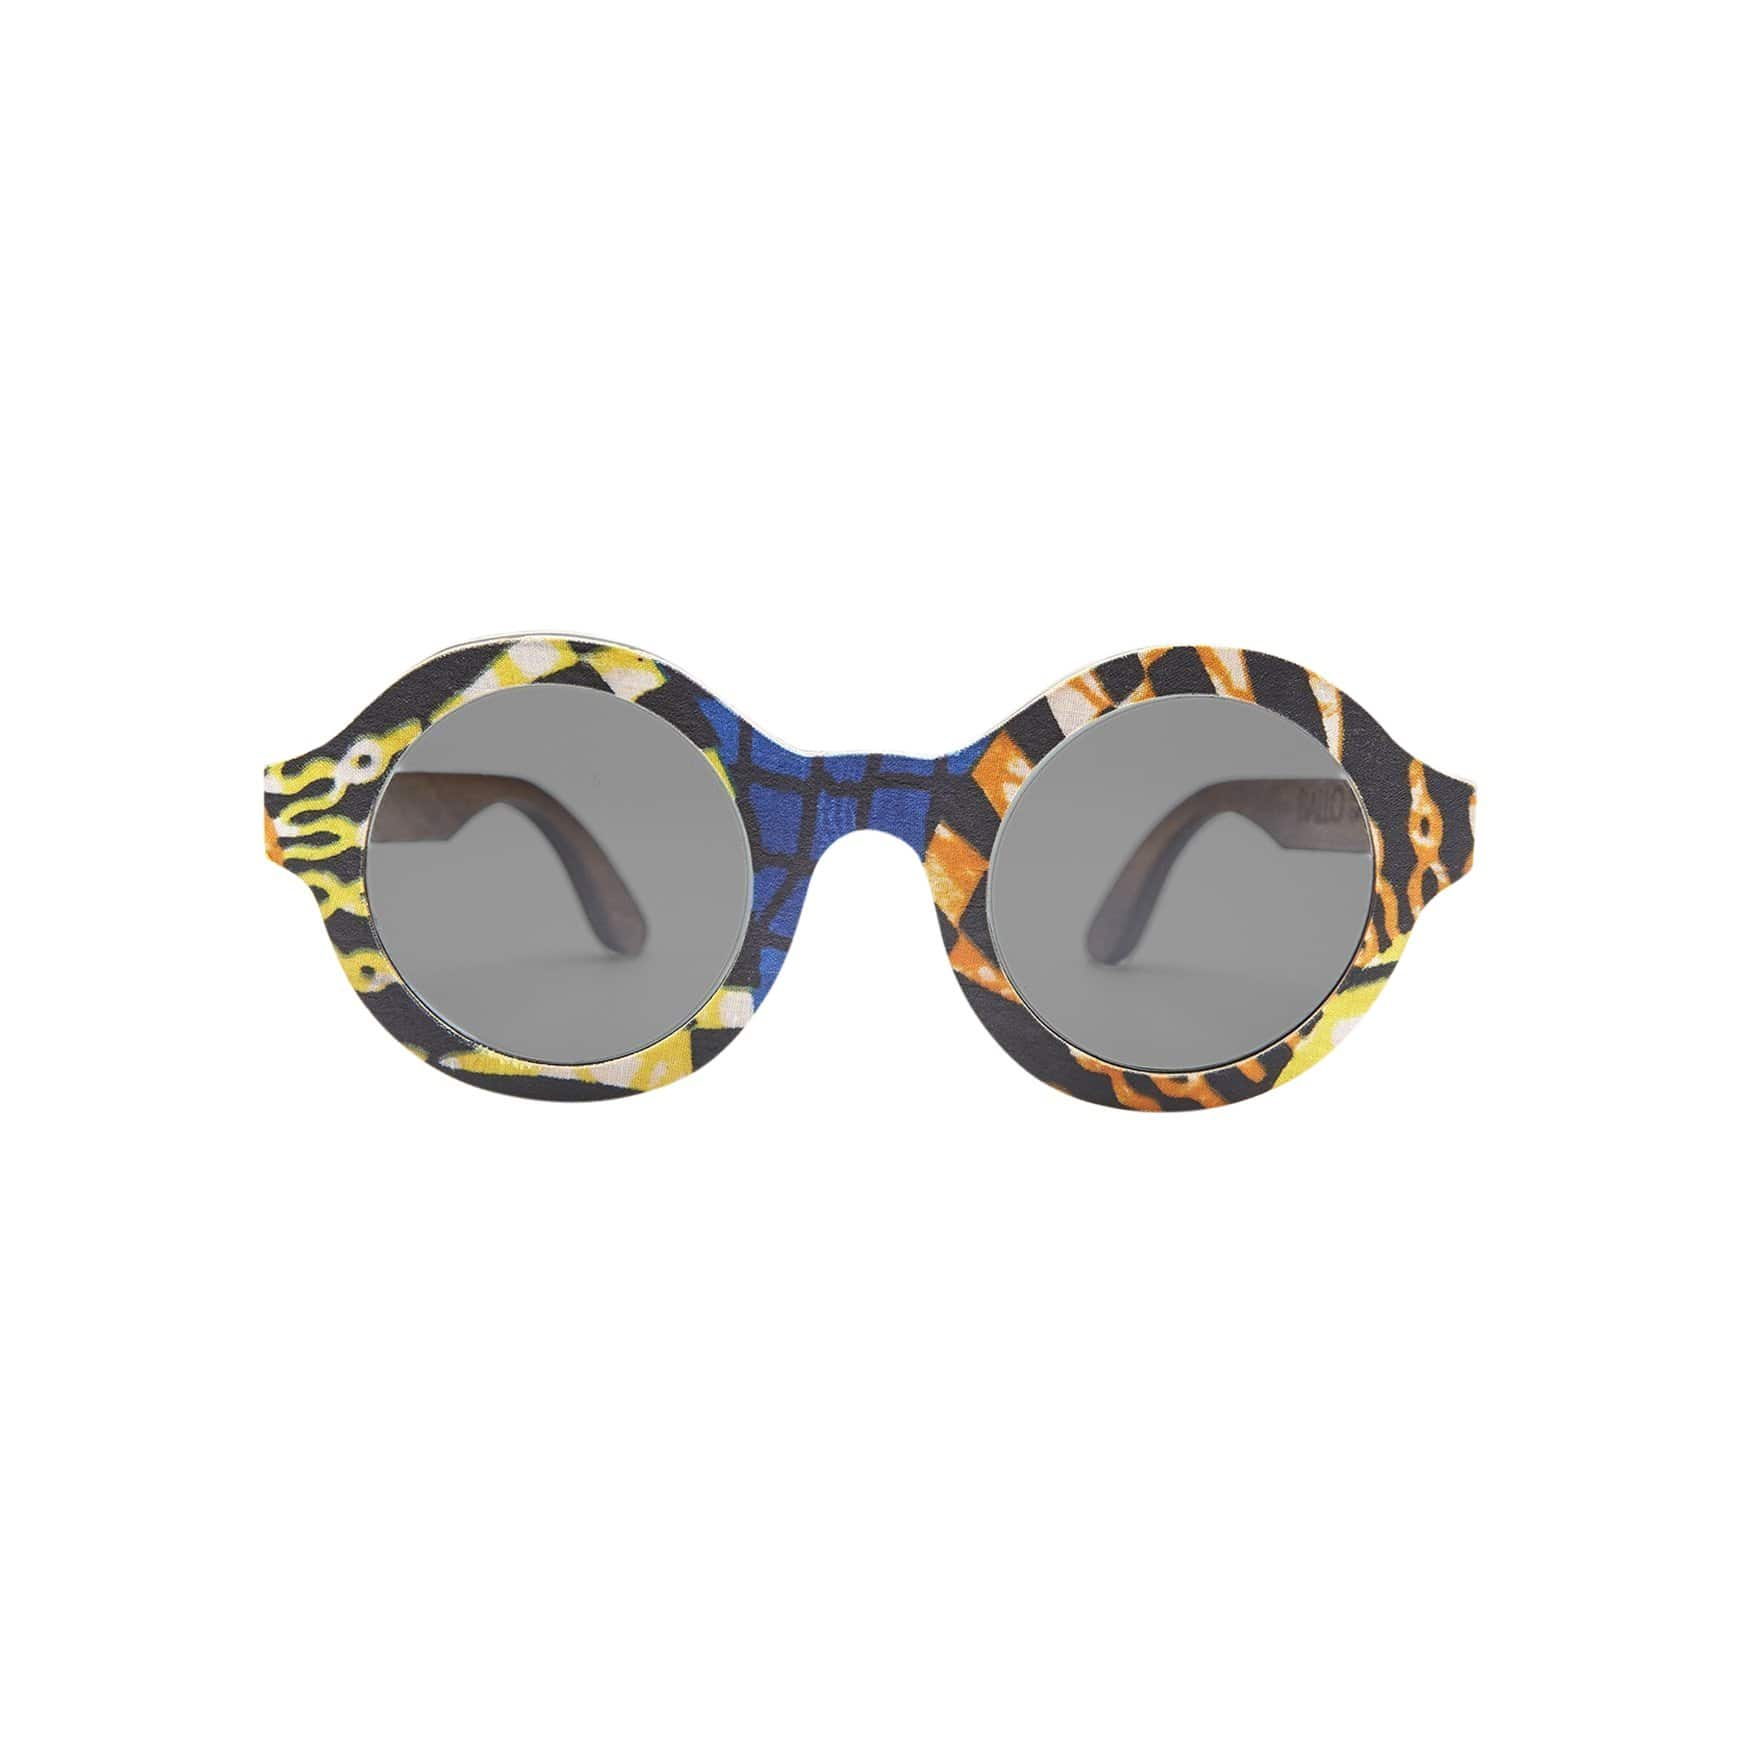 Ballo Sunglasses + Eyewear Olive with African Fabric 4